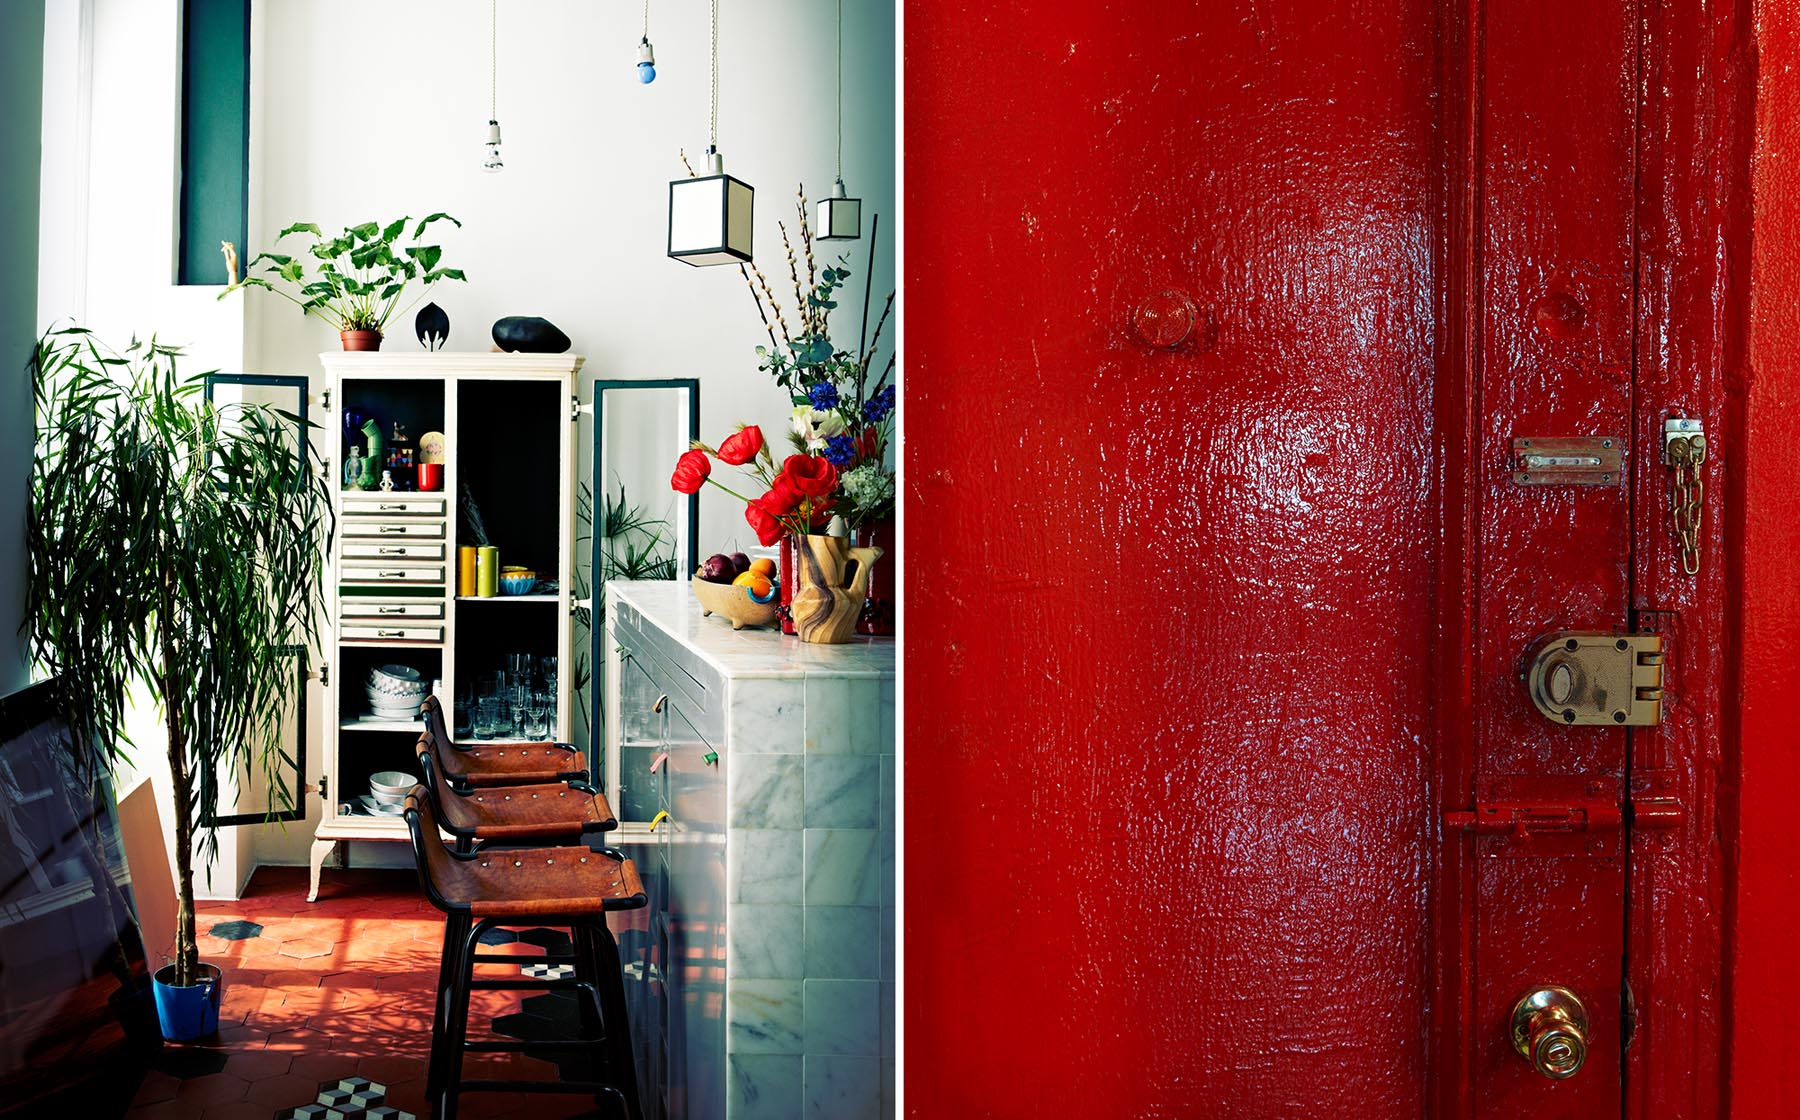 Graham Atkins-Hughes Room & Red Door